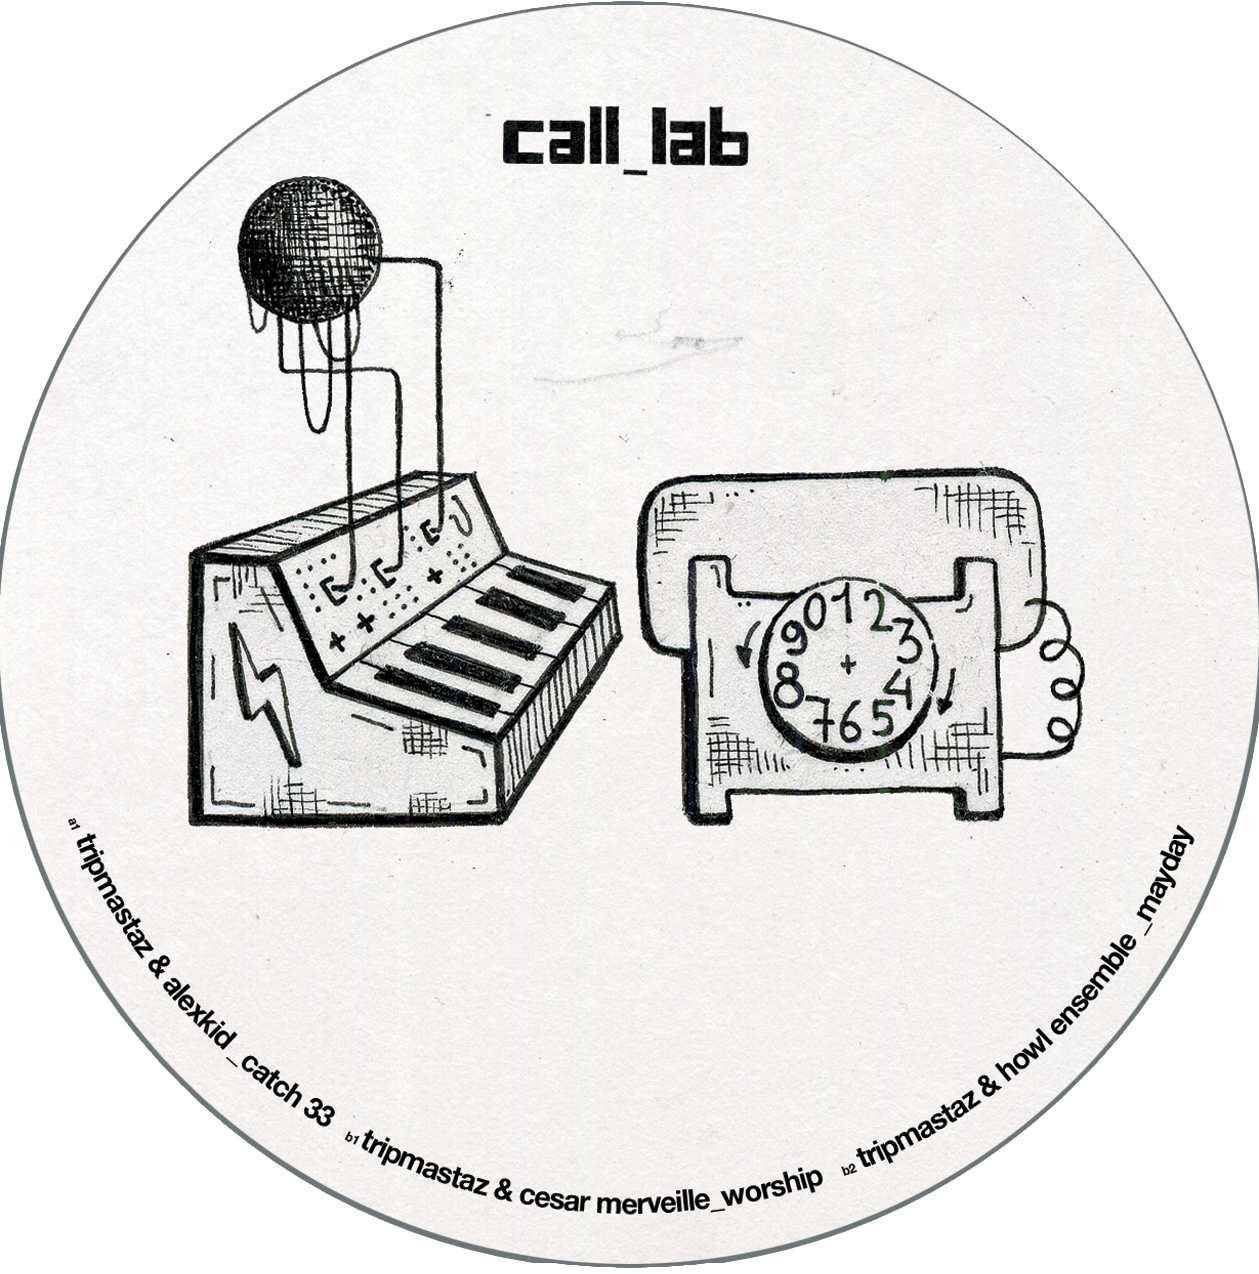 call_lab 01 Tripmastaz A